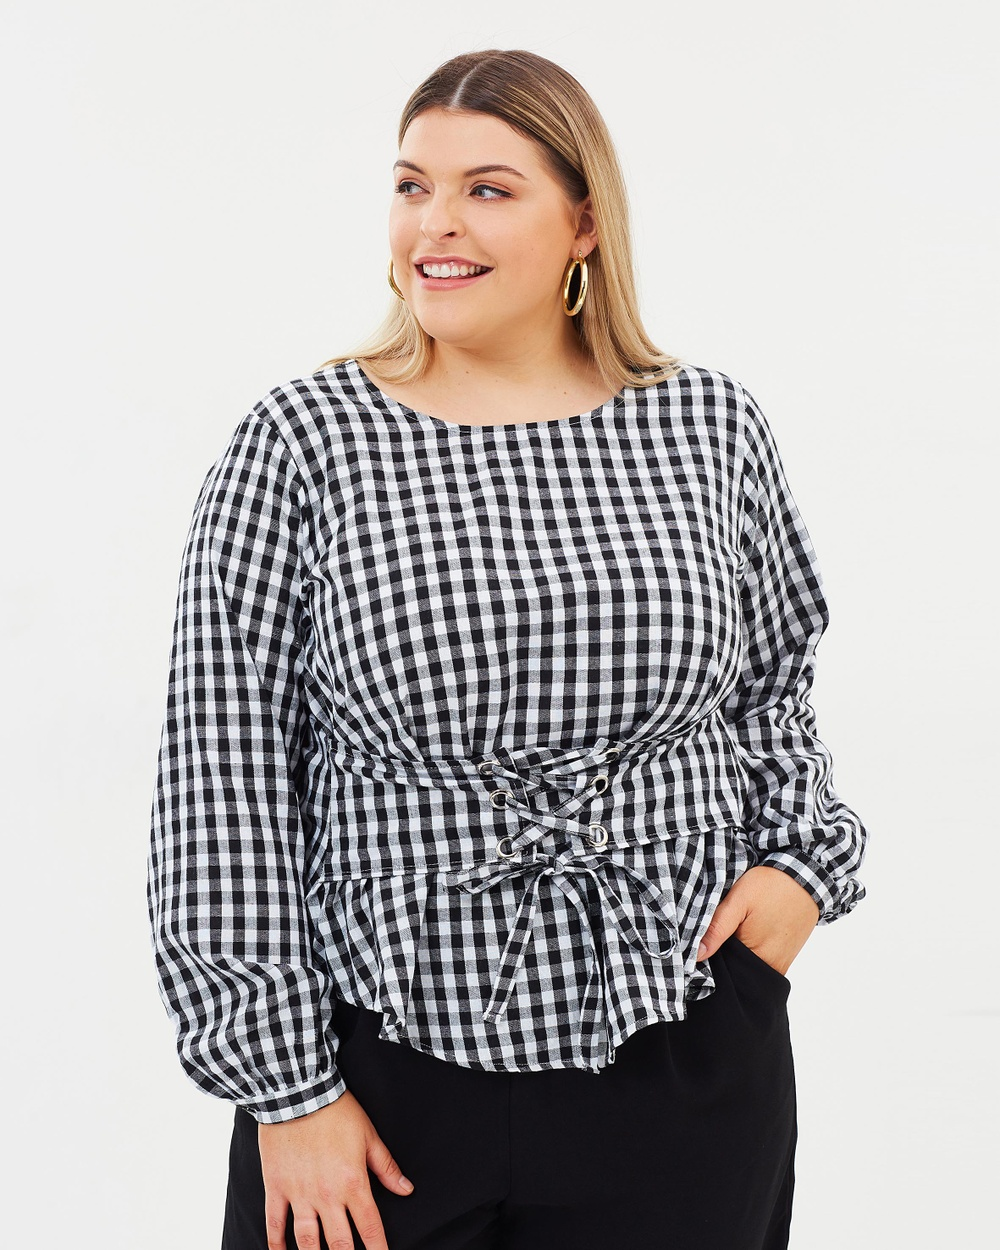 Atmos & Here Curvy ICONIC EXCLUSIVE Emma Corset Top Tops Gingham ICONIC EXCLUSIVE Emma Corset Top